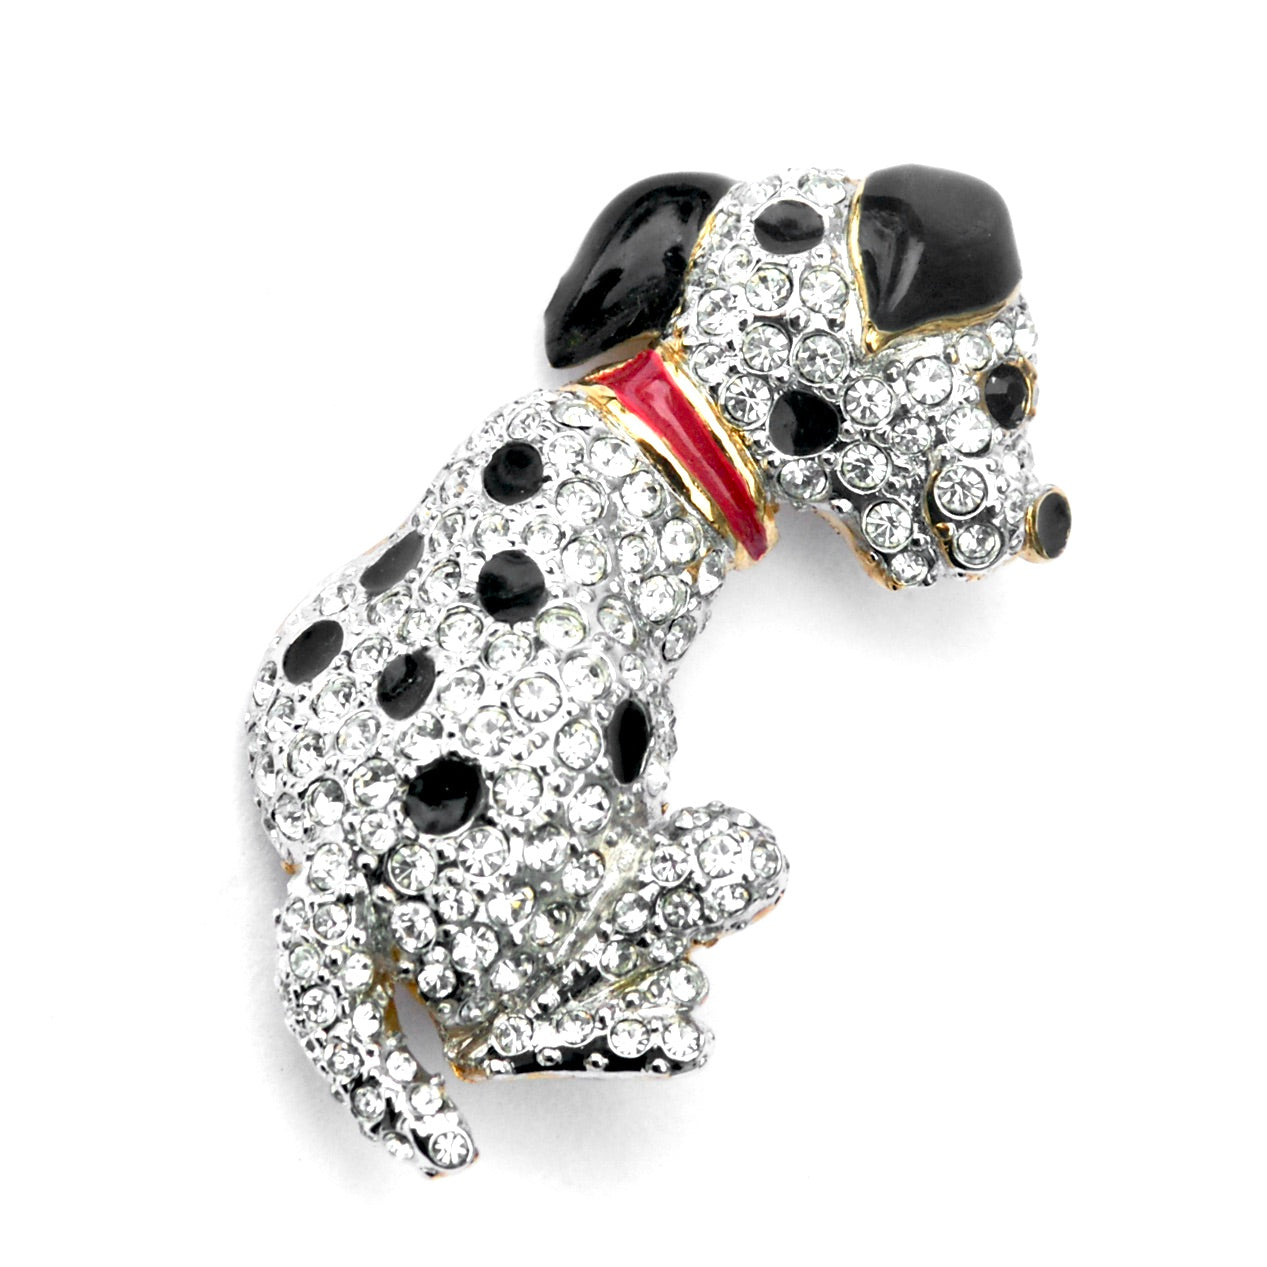 Eclectica Vintage Jewellery | UK | 1980s Vintage Attwood & Sawyer Dalmatian Brooch